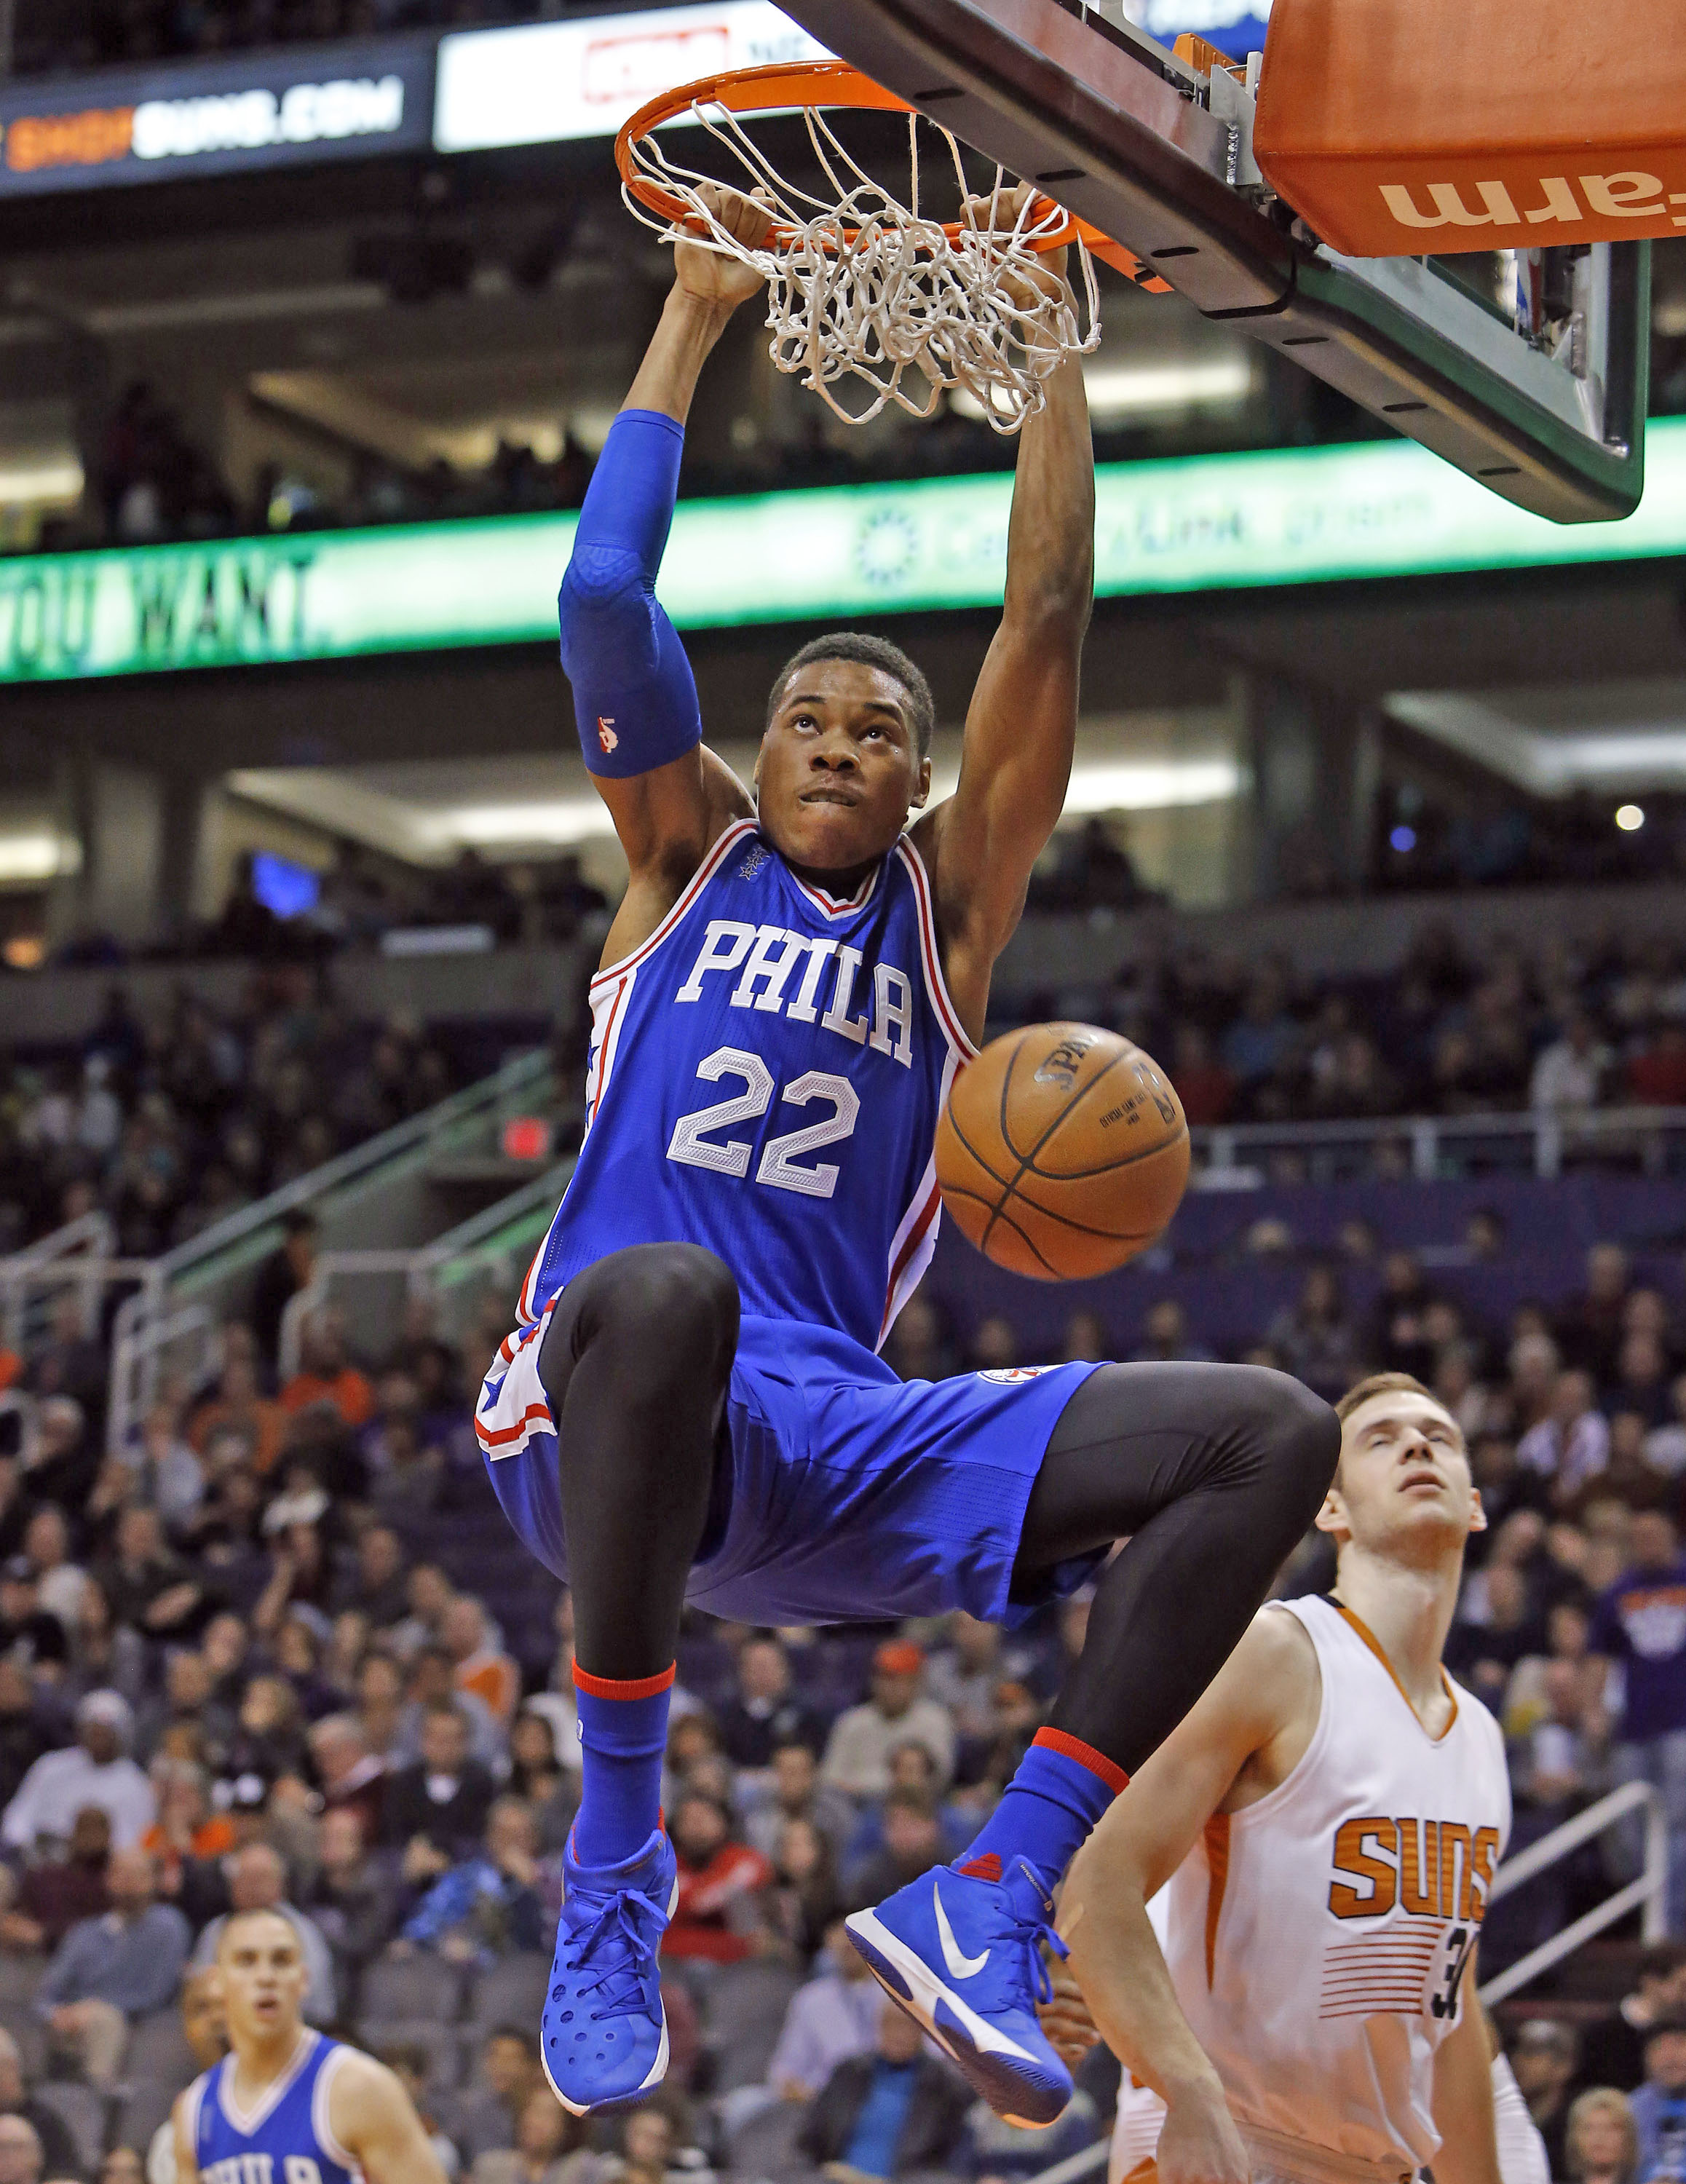 Philadelphia 76ers forward Richaun Holmes (22) dunks against the Phoenix Suns in the second quarter during an NBA basketball game, Saturday, Dec. 26, 2015, in Phoenix. (AP Photo/Rick Scuteri)